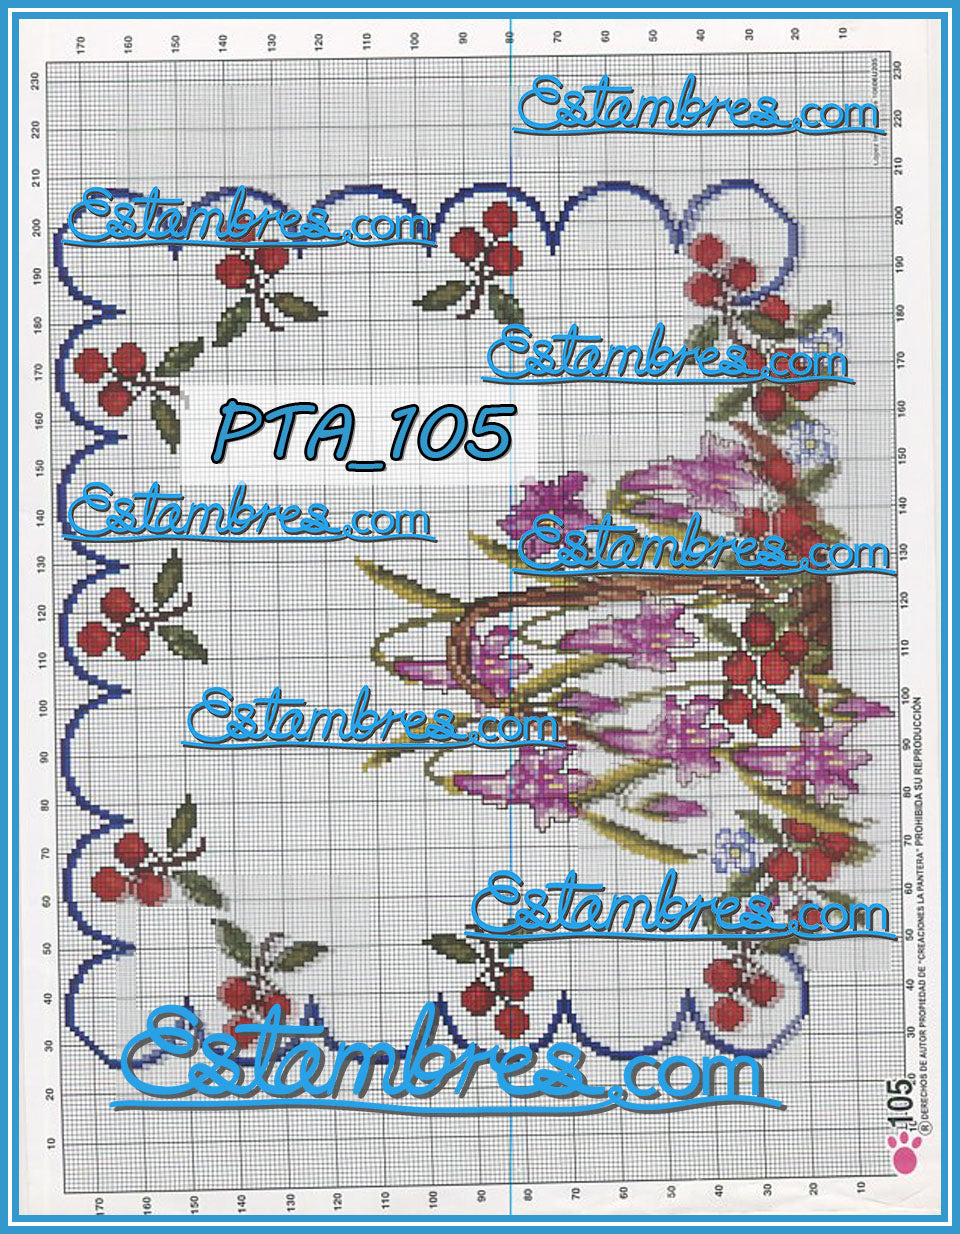 Patita Rosa [PTA069-137] - 2 of 3 - Embroidery Pattern | Crewel Stitch Embroidery | Creative Needlecraft Schemes